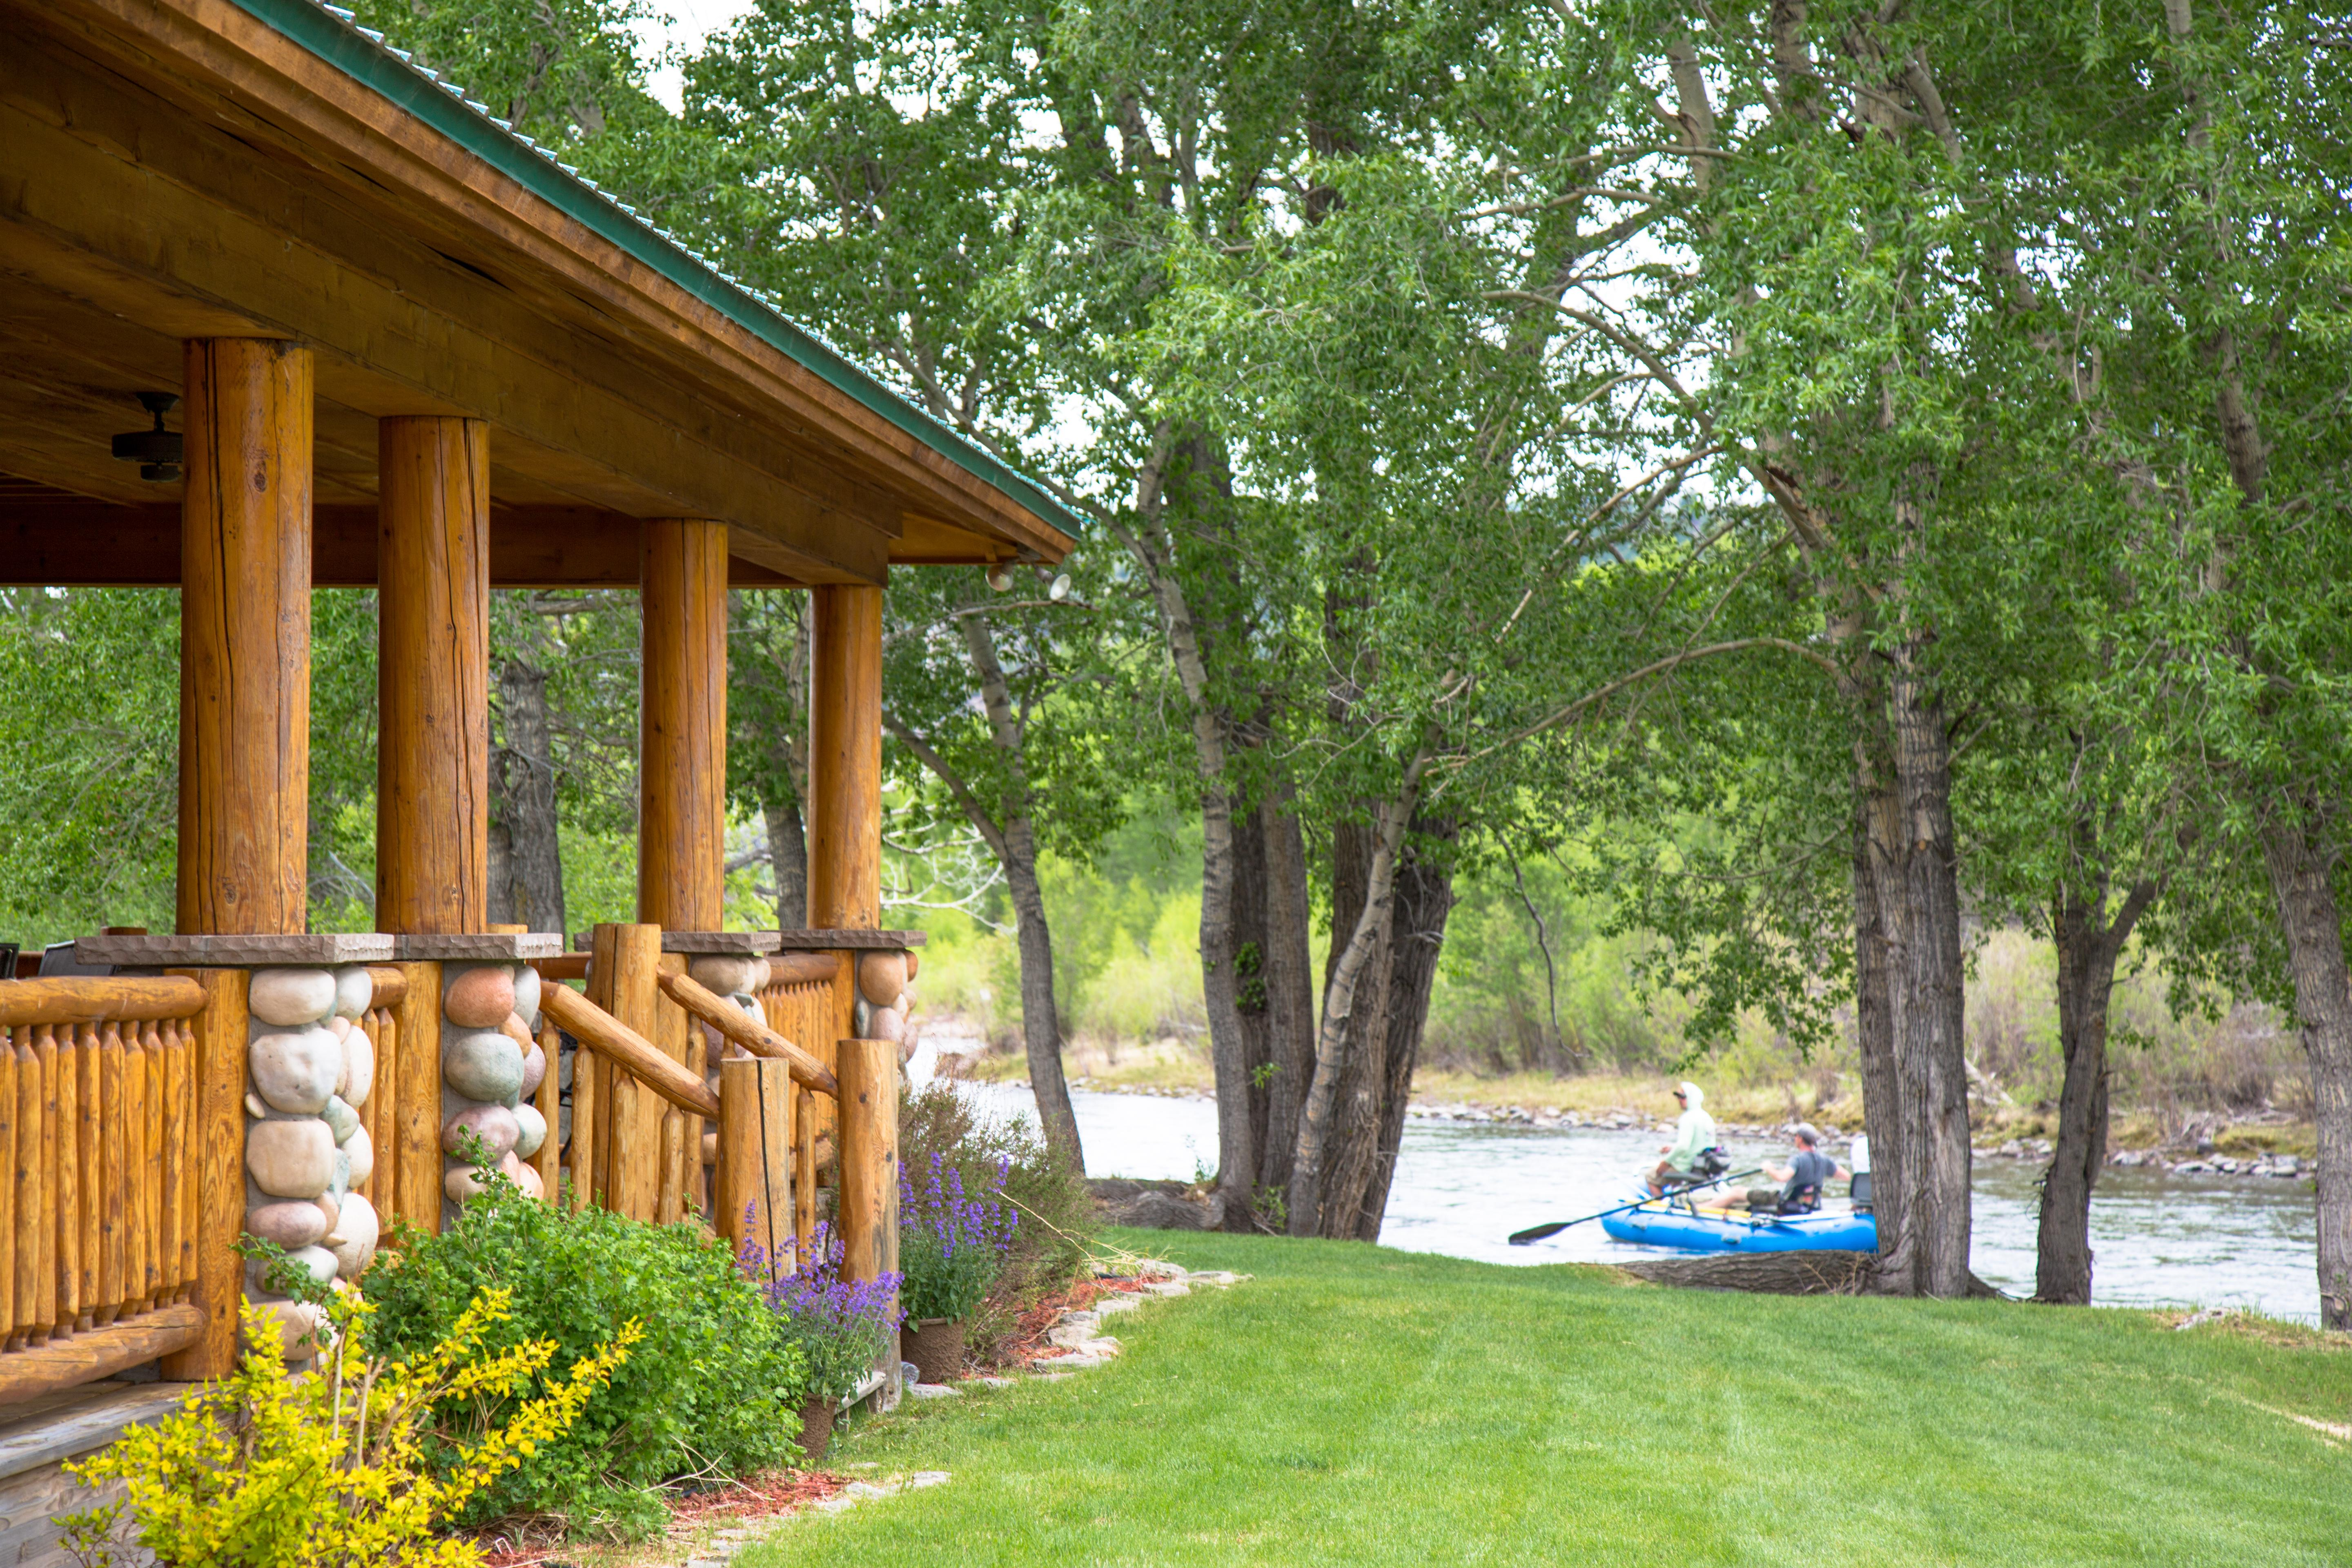 Fishing lodge exterior located right on the river next to hole #3 on the golf course